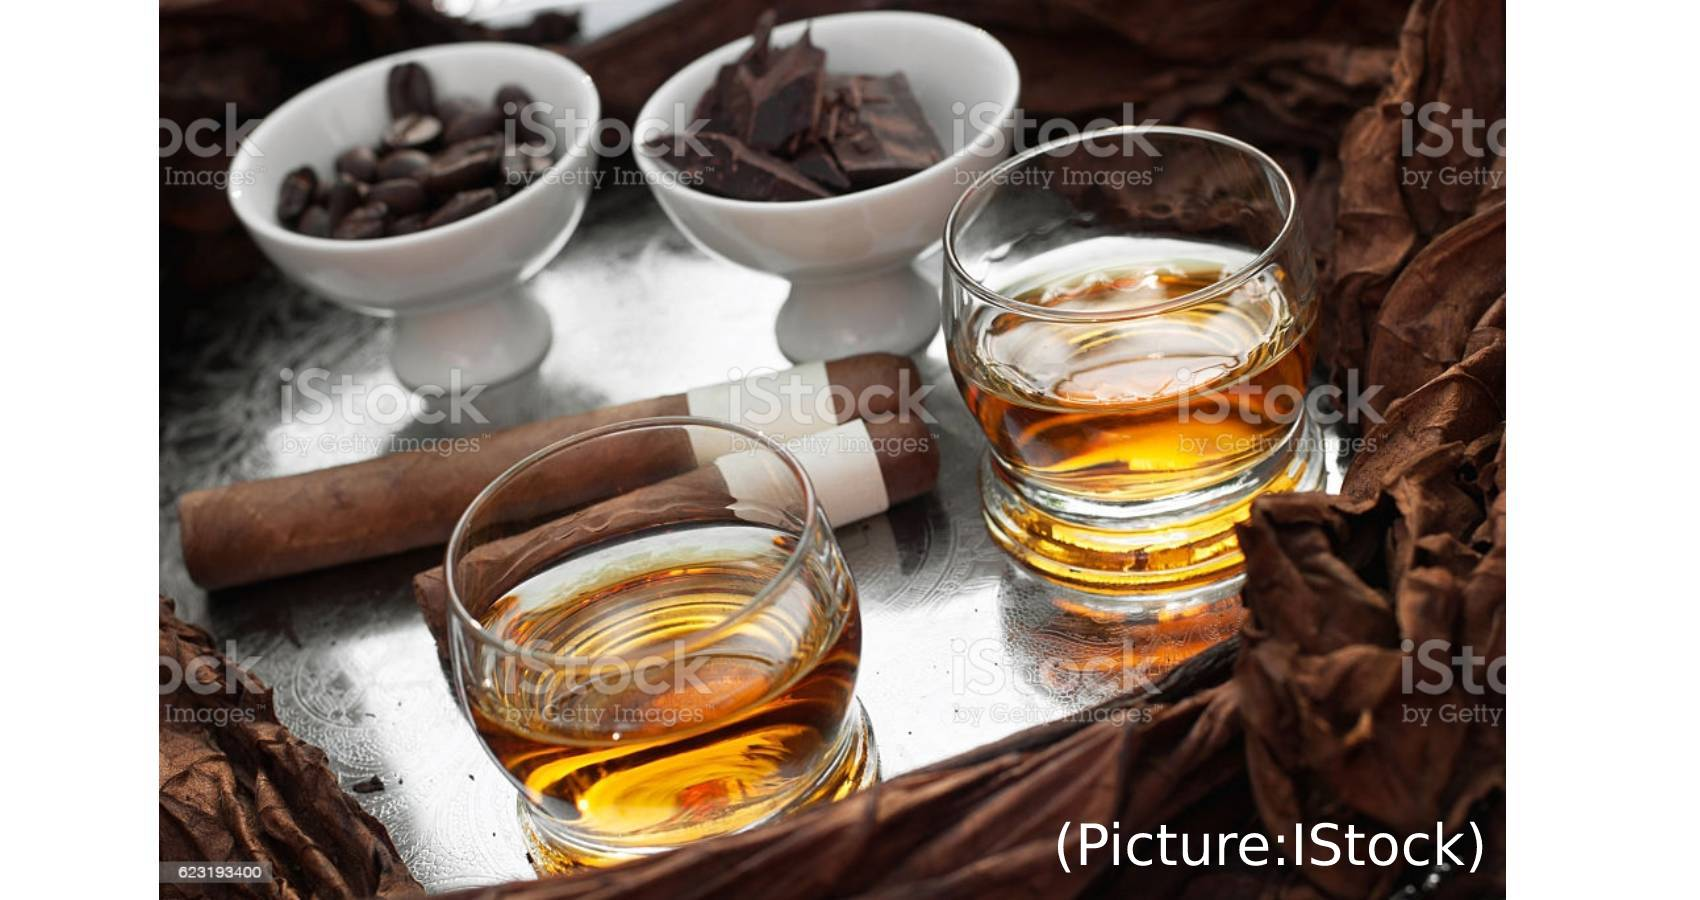 Chocolate With Whisky And Rum